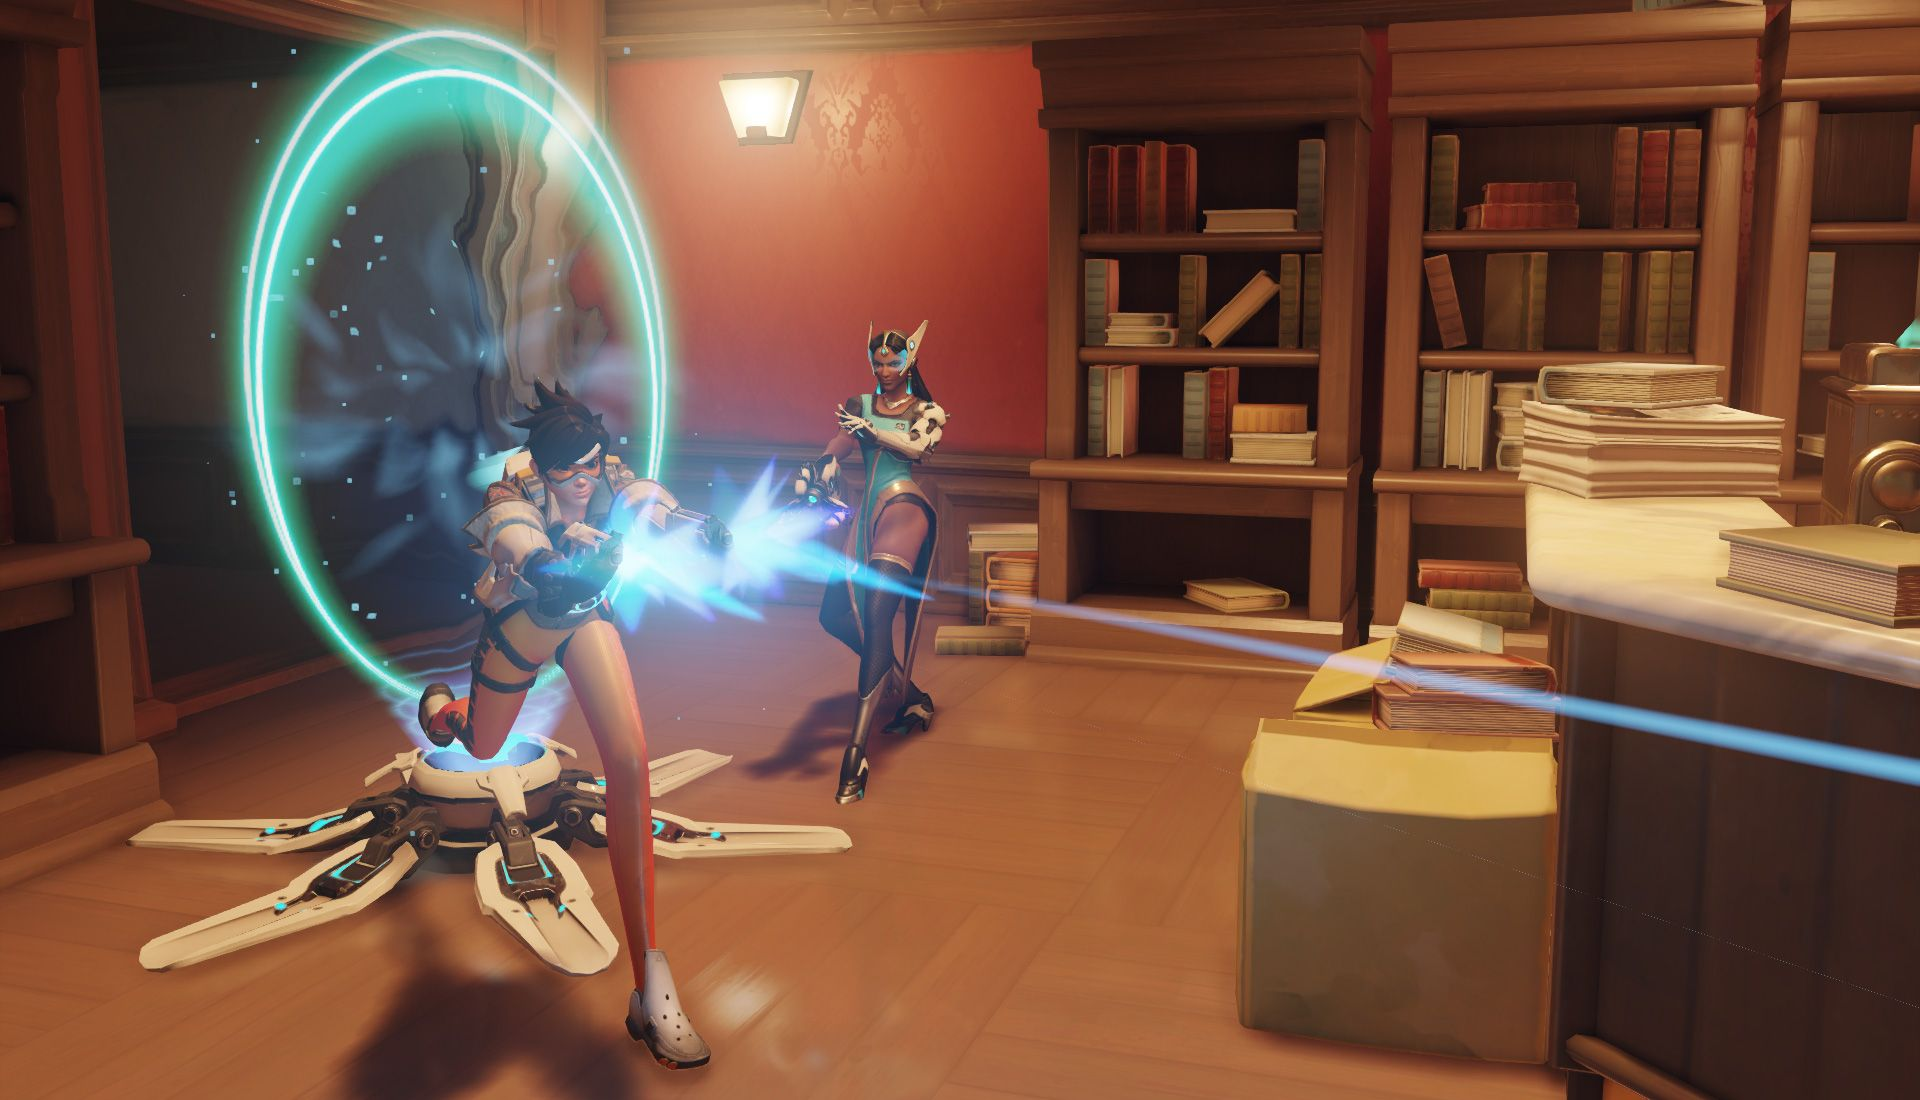 Symmetra's Teleporter allows for constant assaults straight from the spawn.